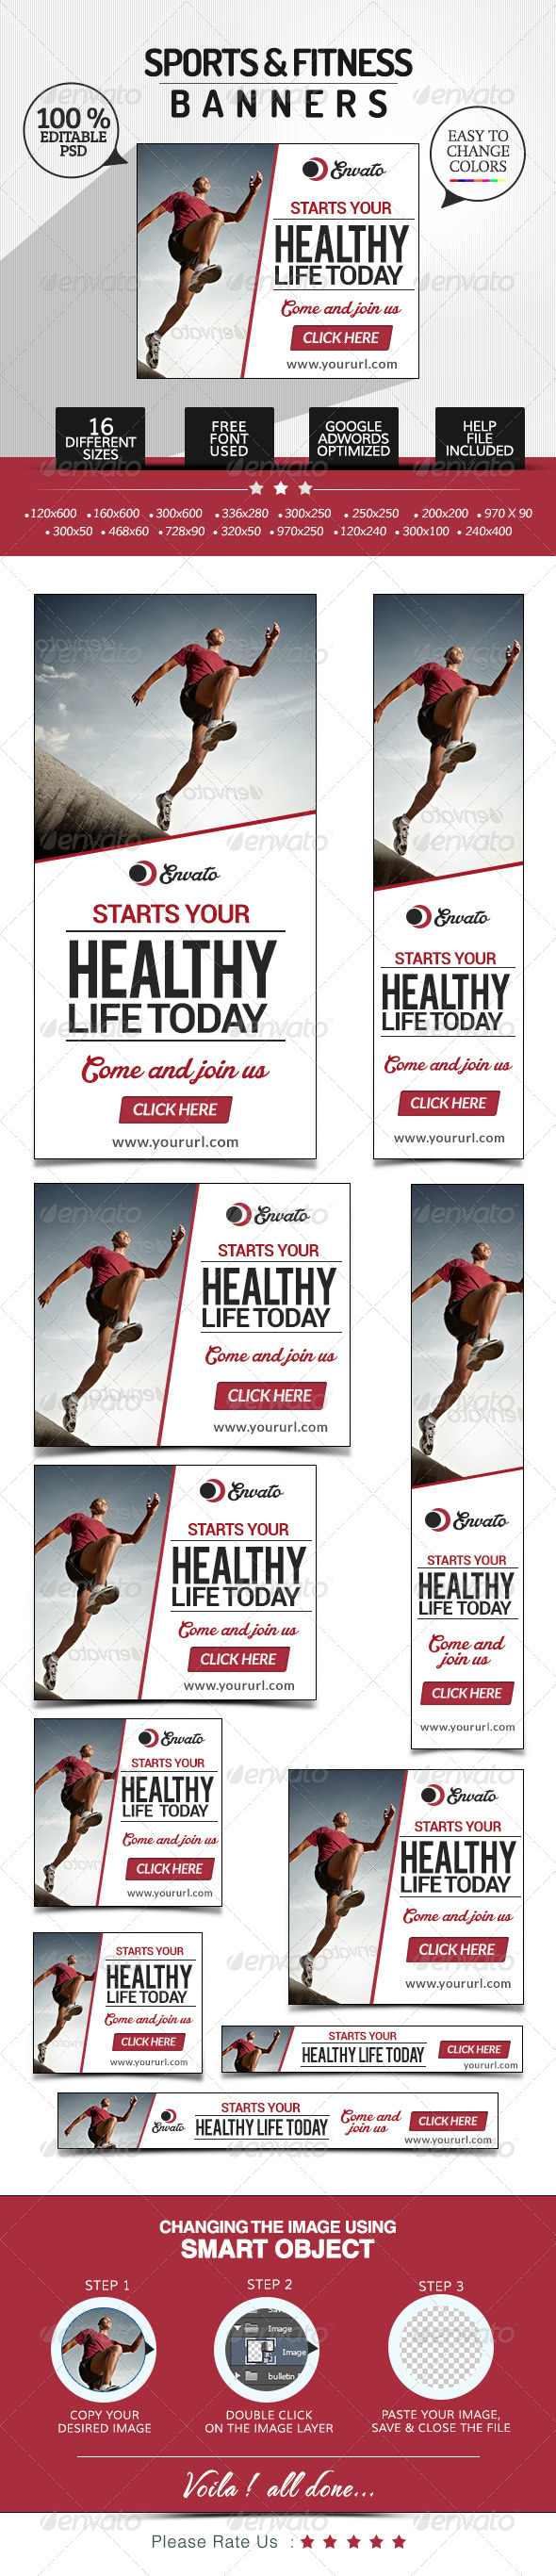 Fitness & Sports Banners